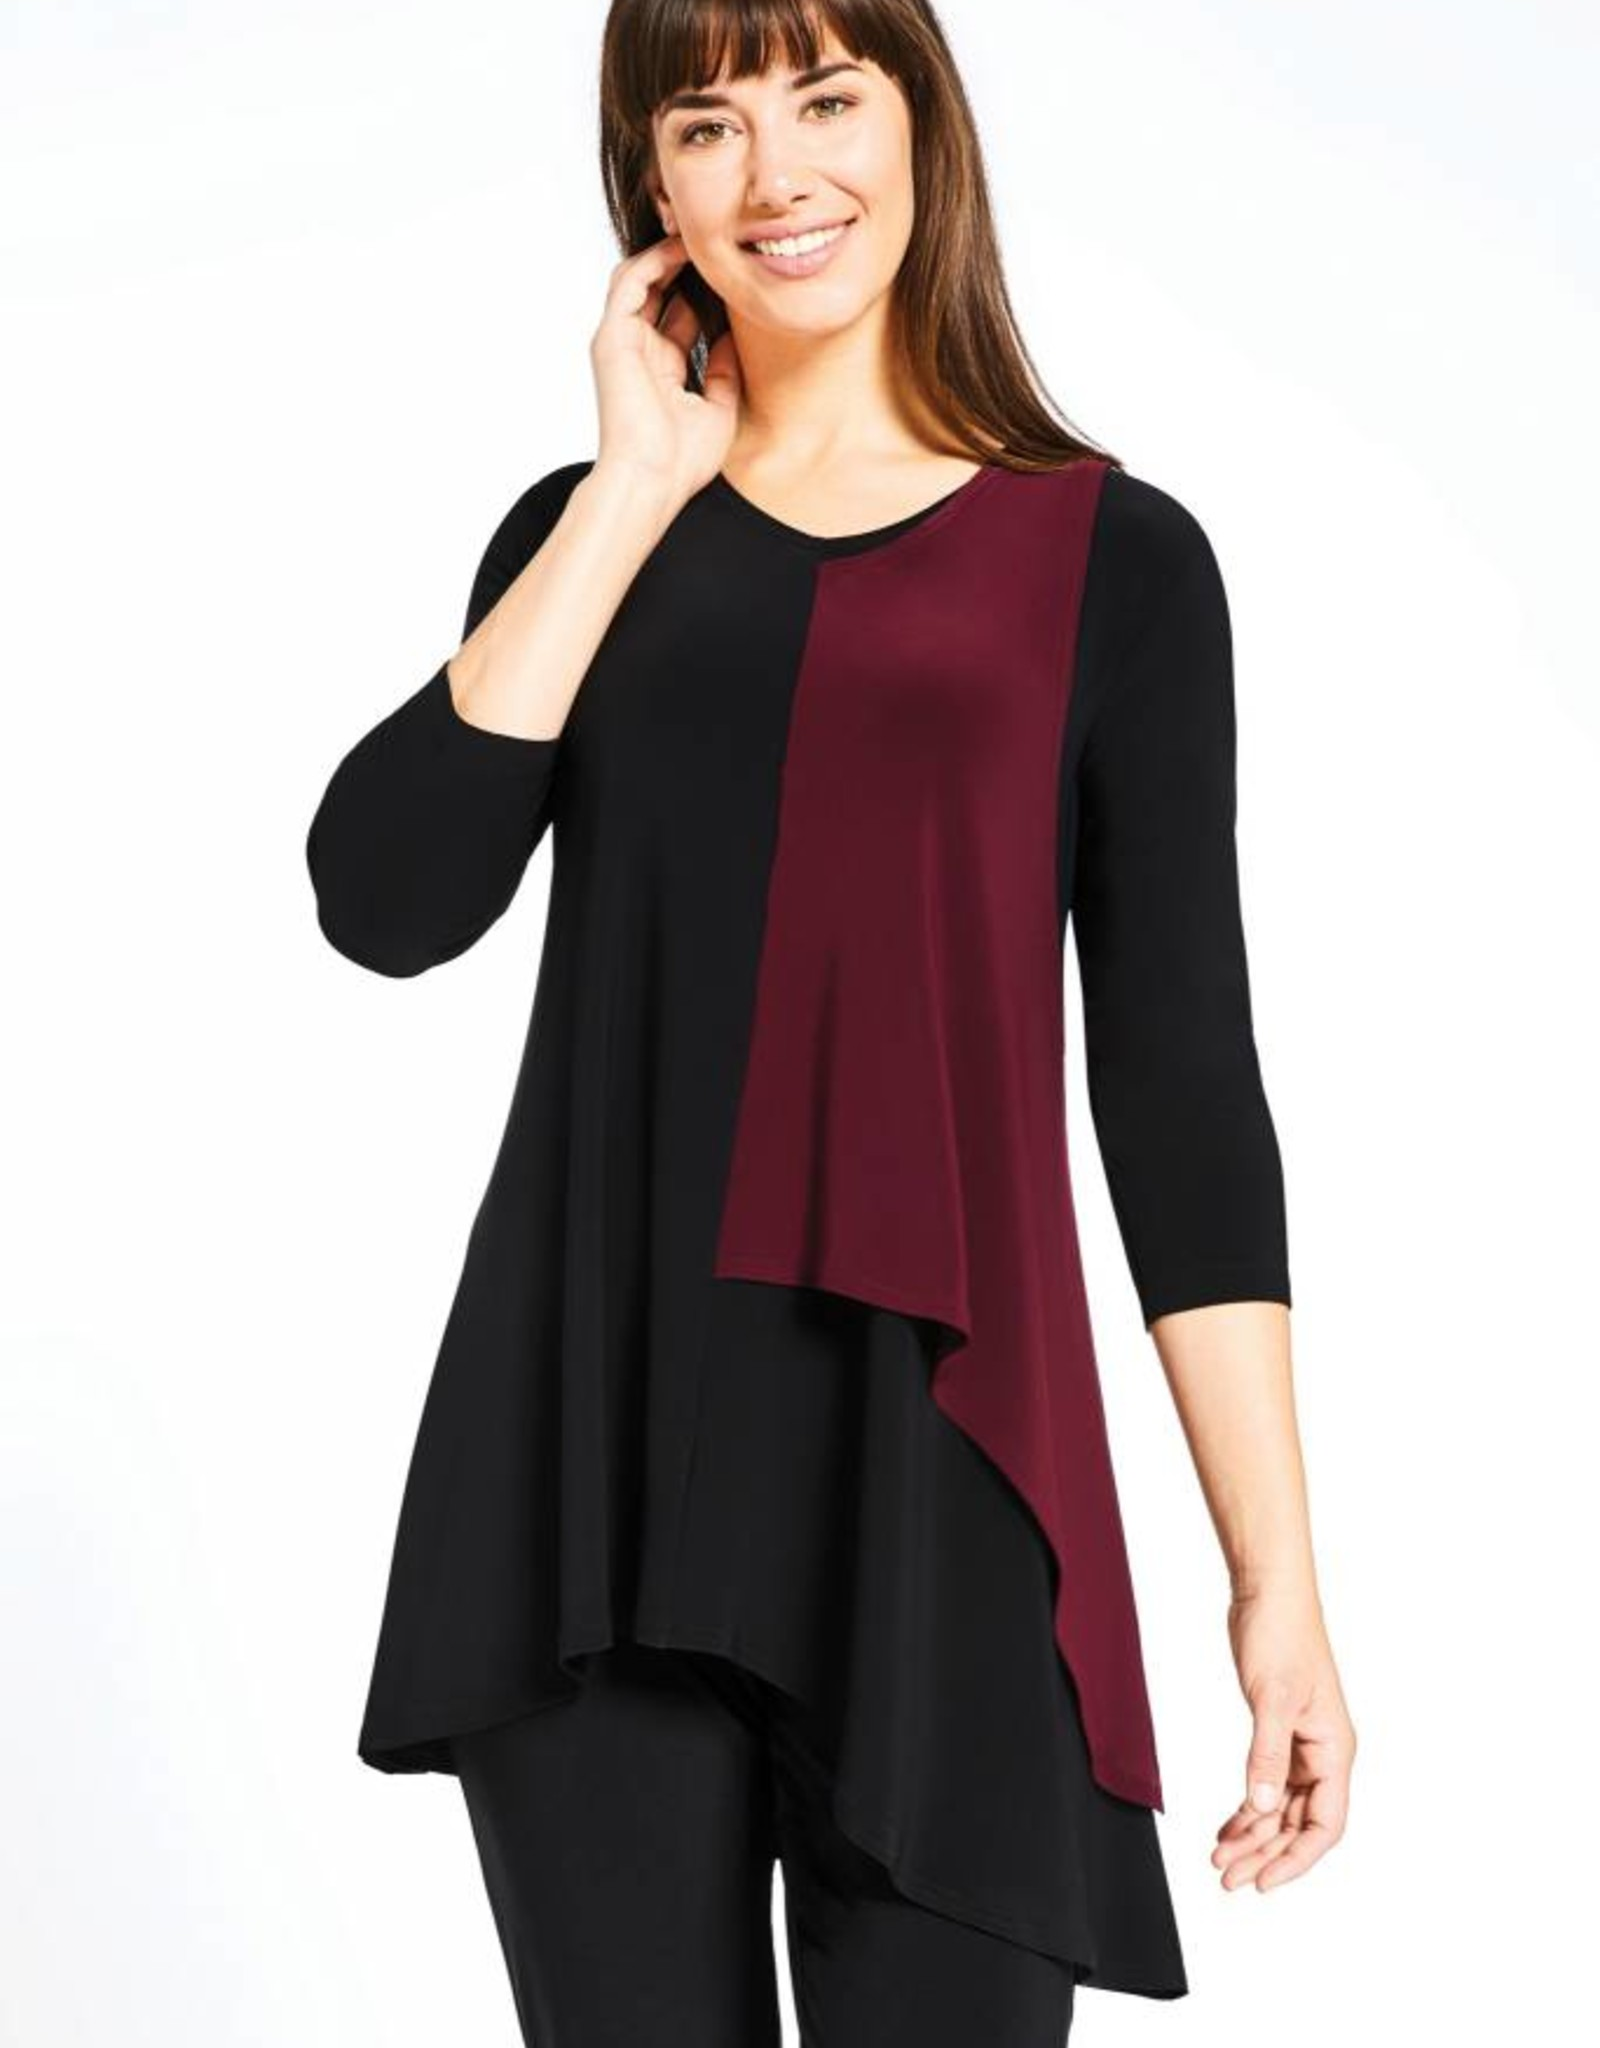 Sympli Matrix Flip Top, 3/4 sleeve 22171CB-2